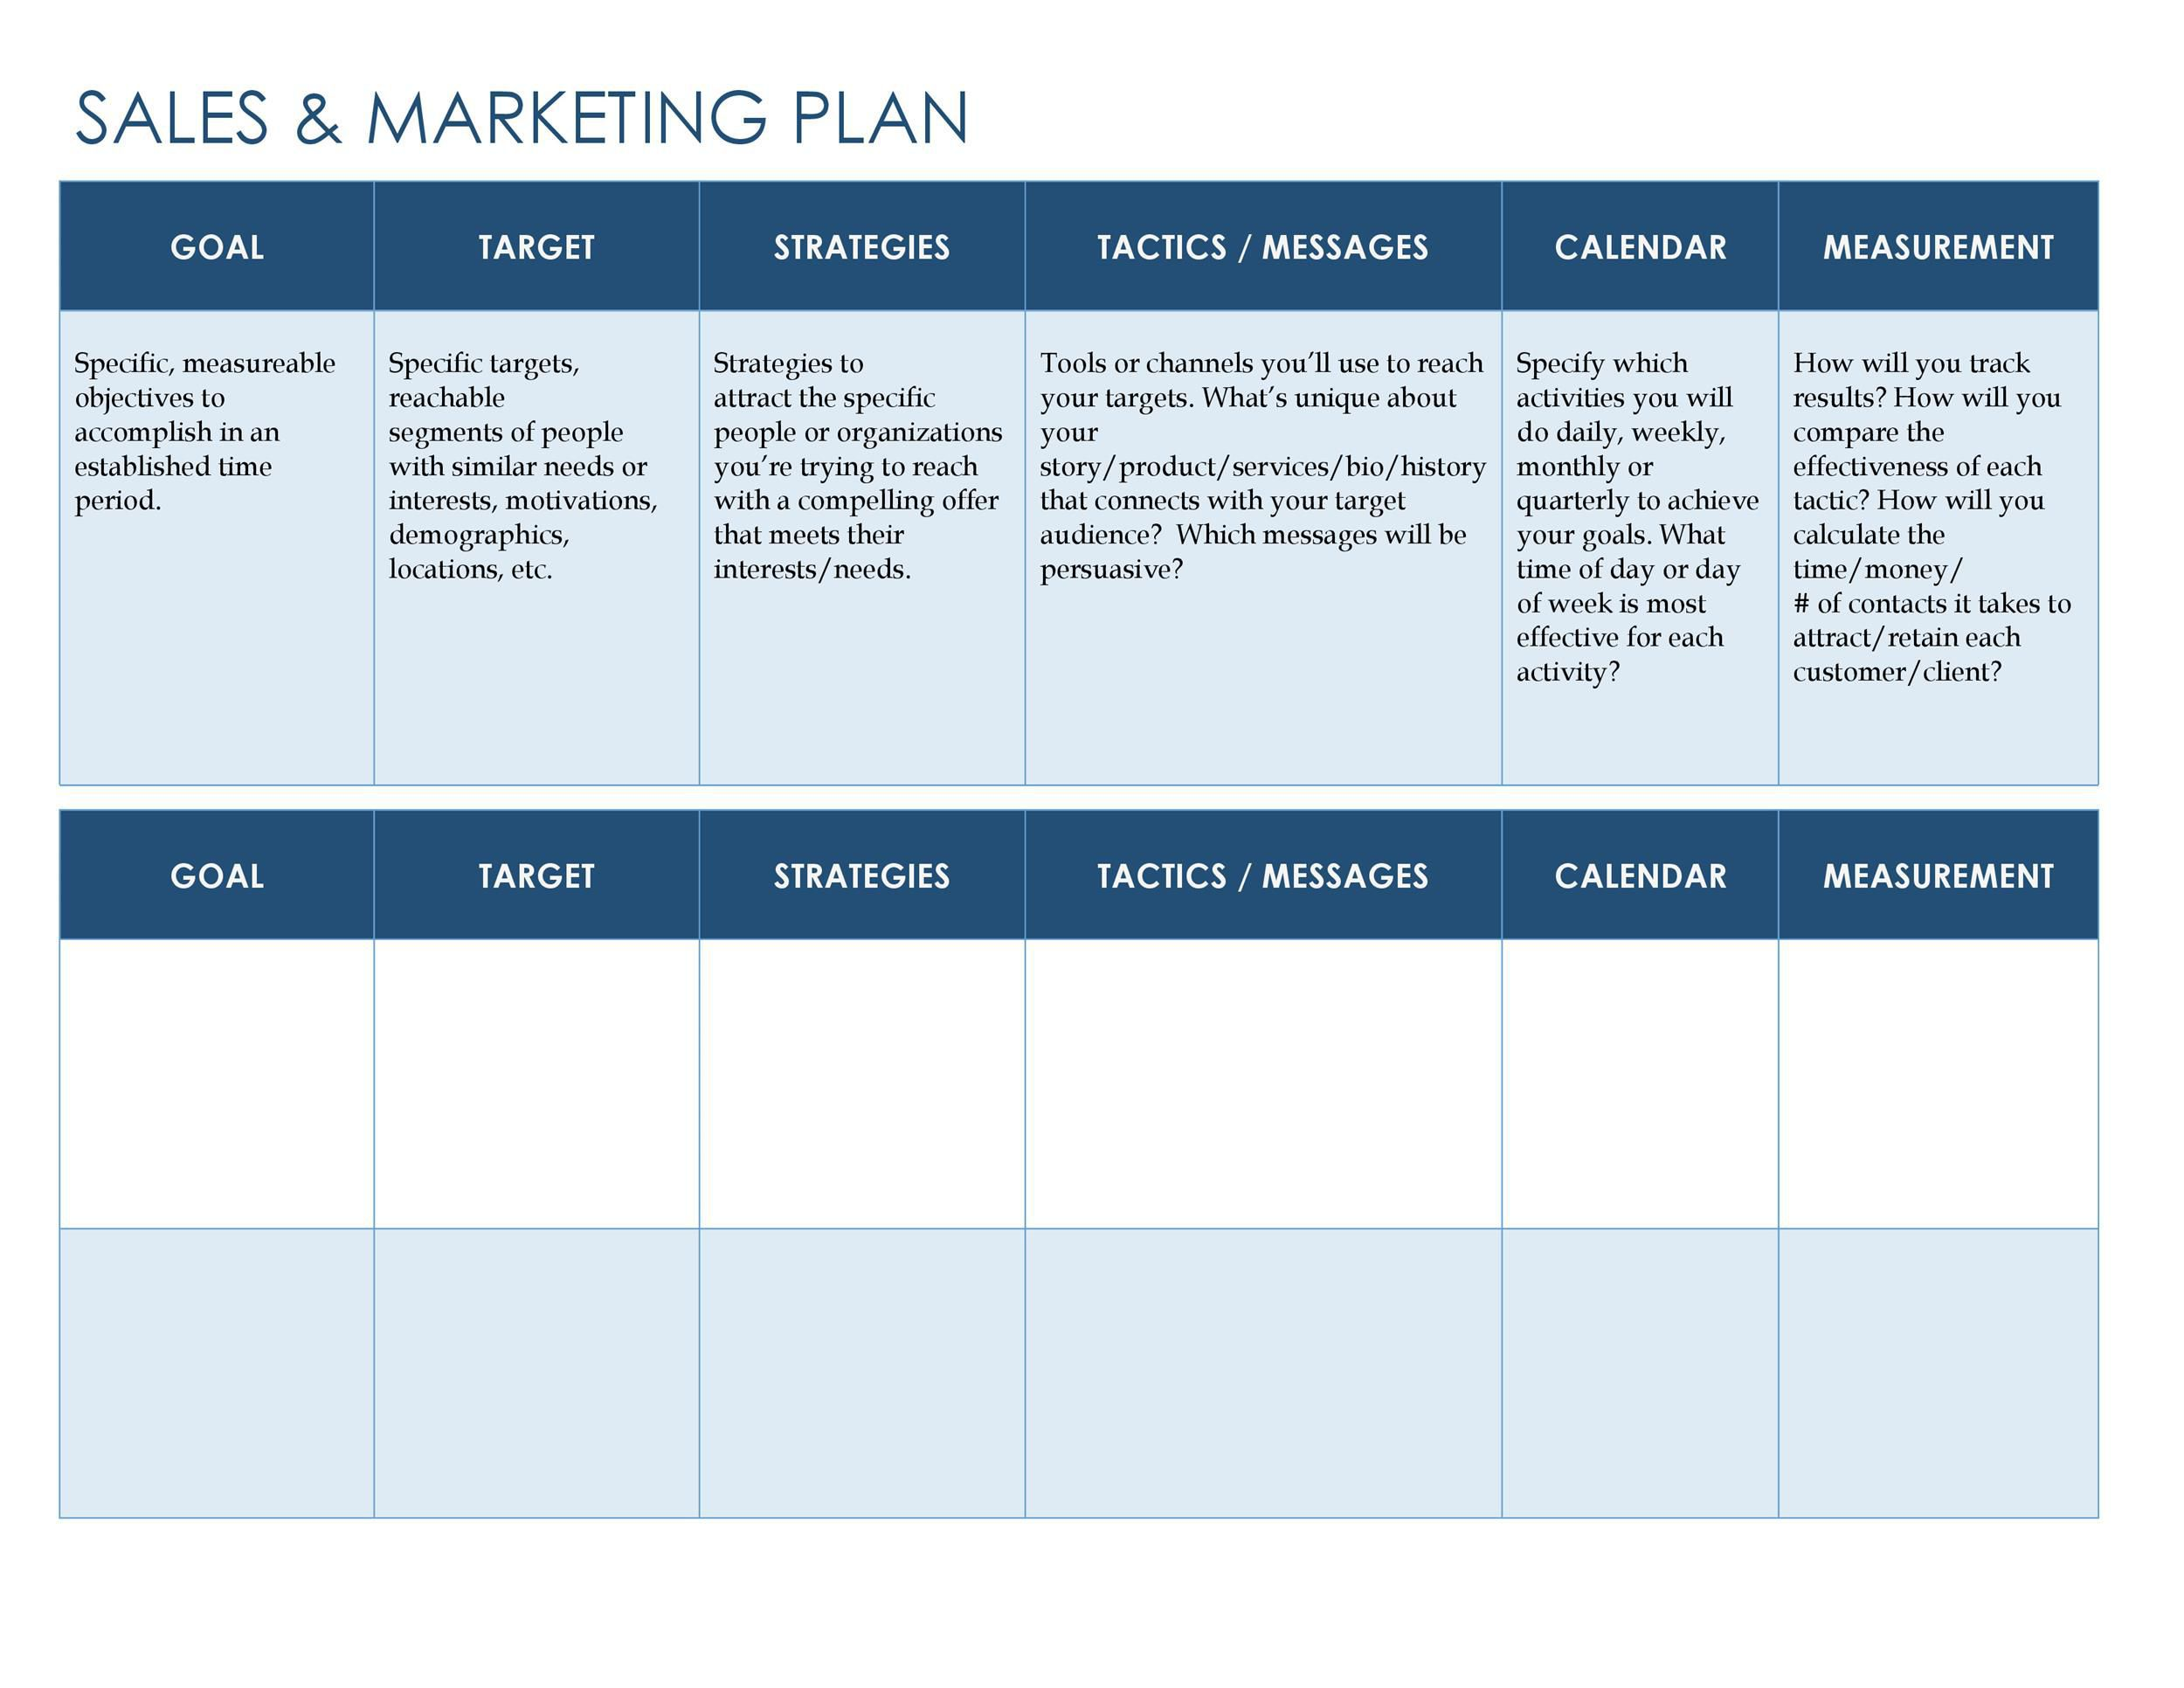 002 Fearsome Hotel Sale And Marketing Action Plan Template High Resolution Full